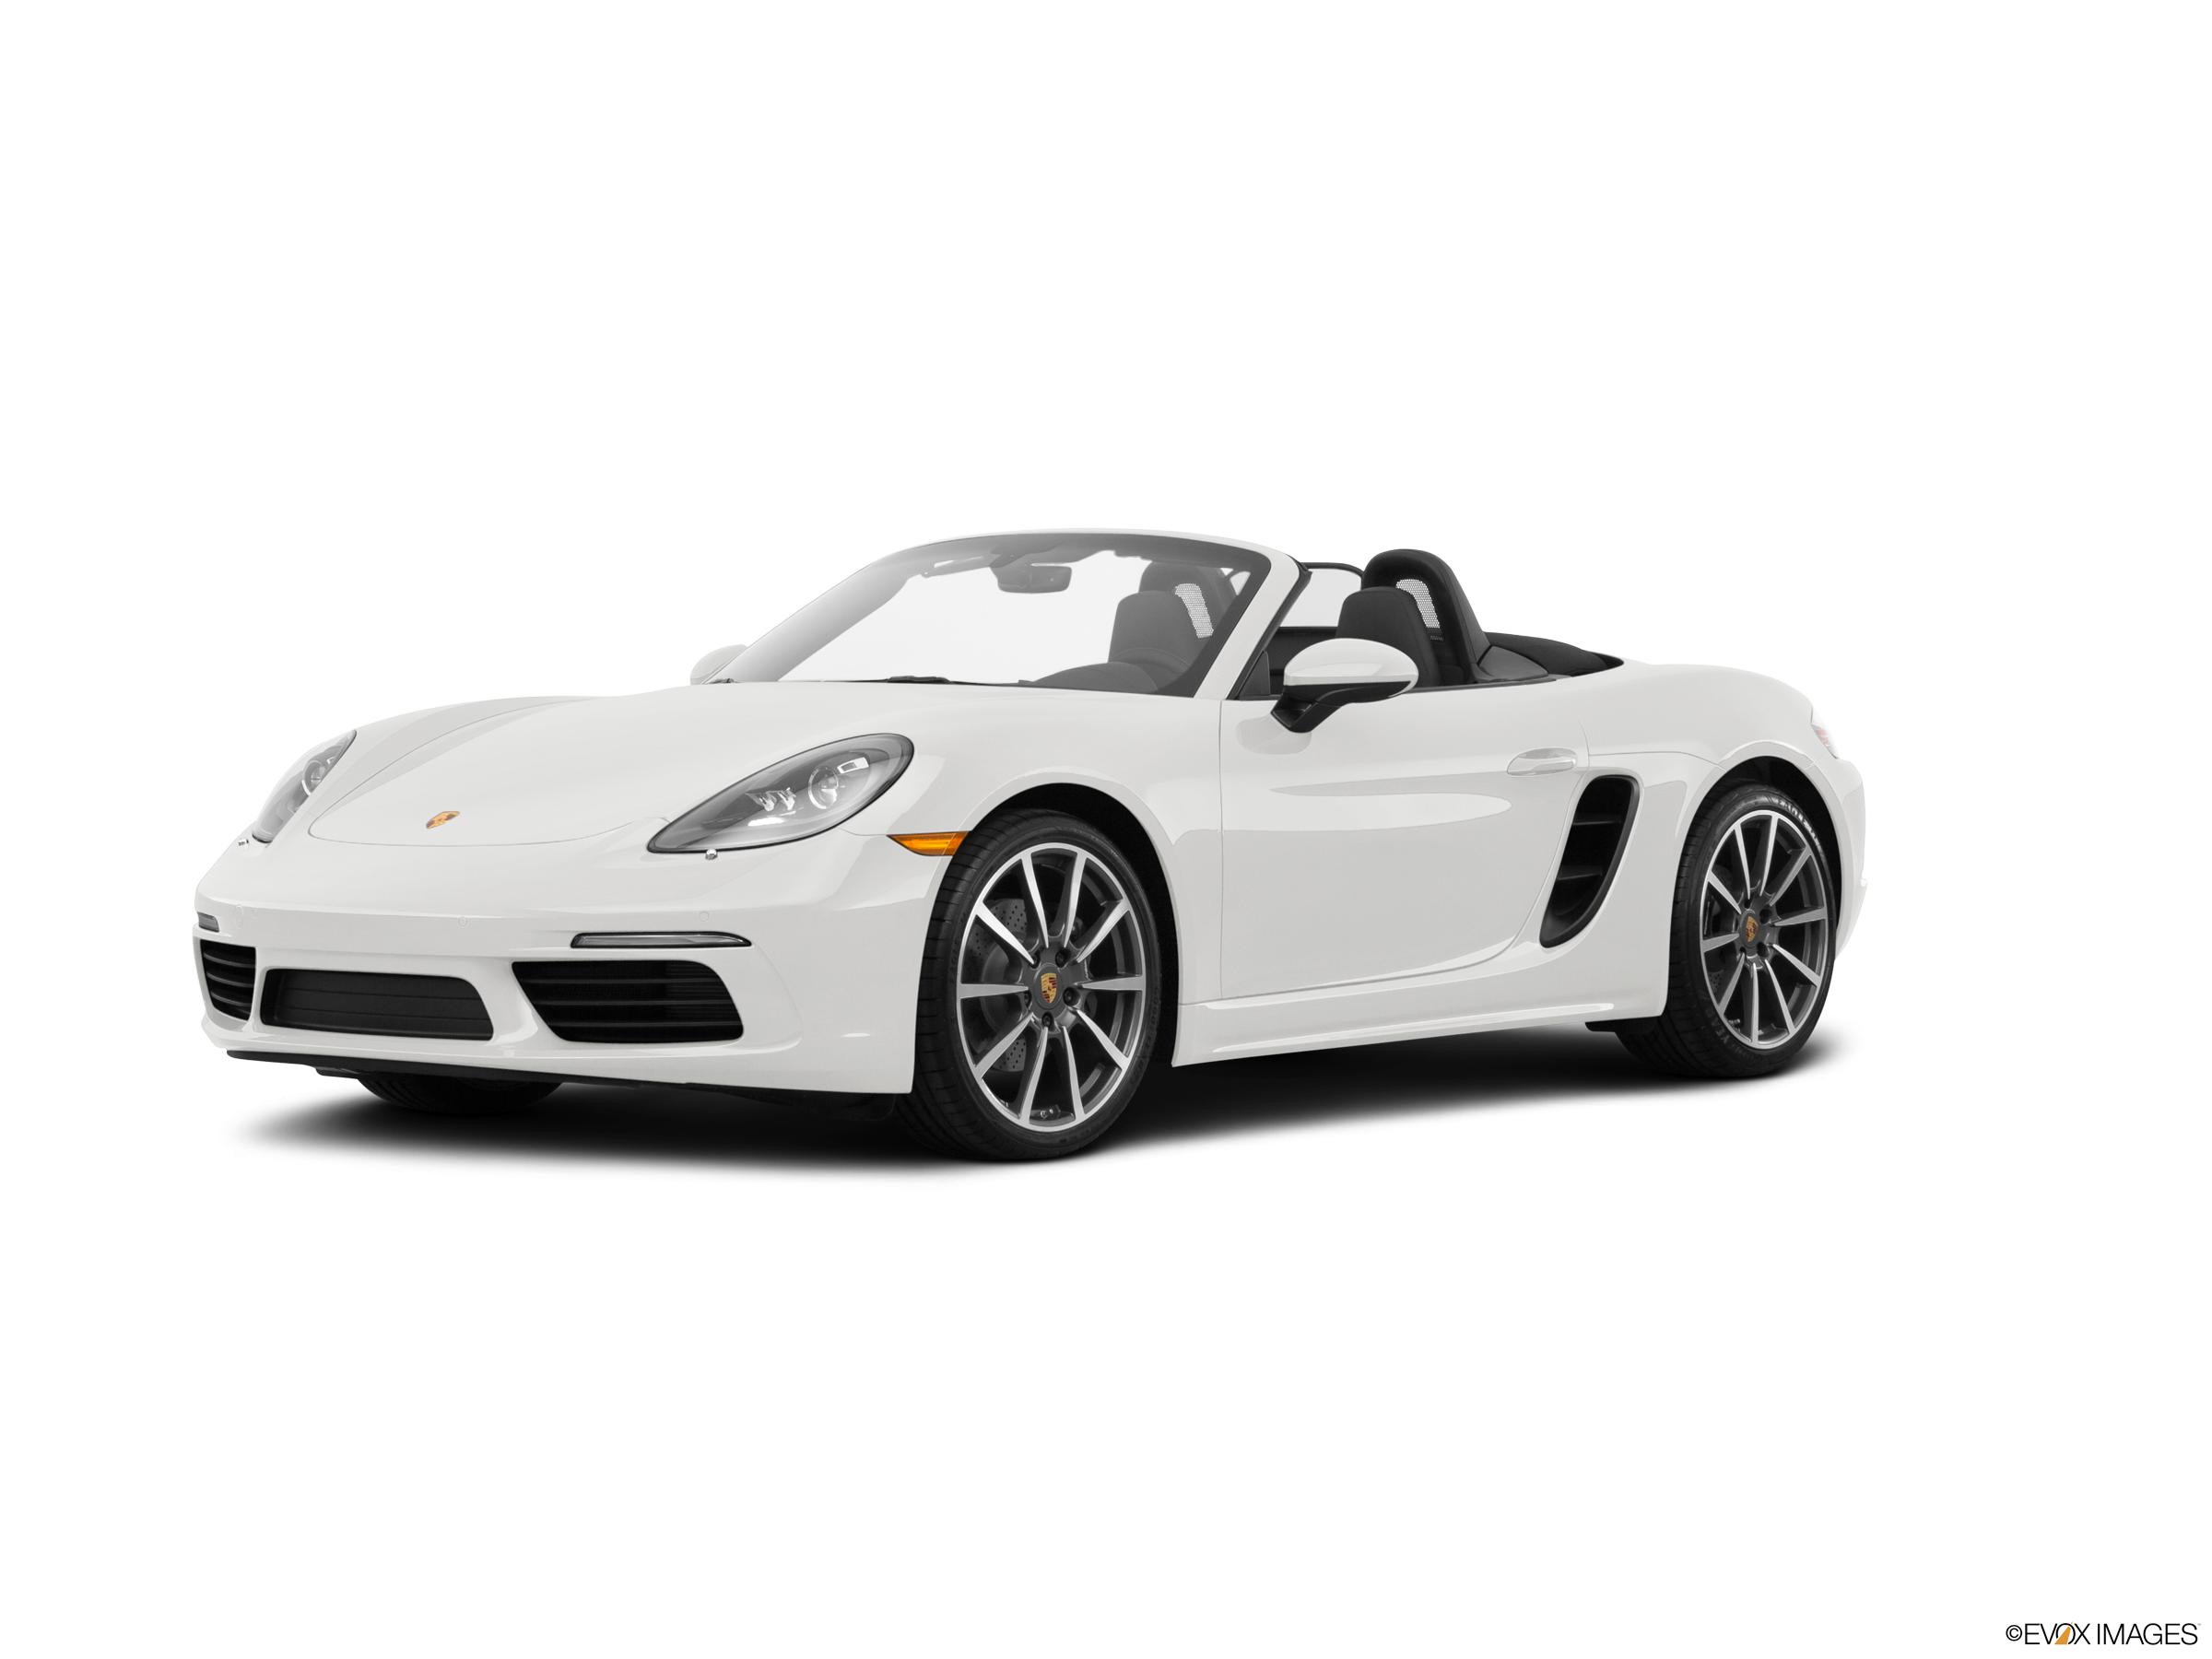 Highest Horsepower Luxury Vehicles of 2019 - 2019 Porsche 718 Boxster